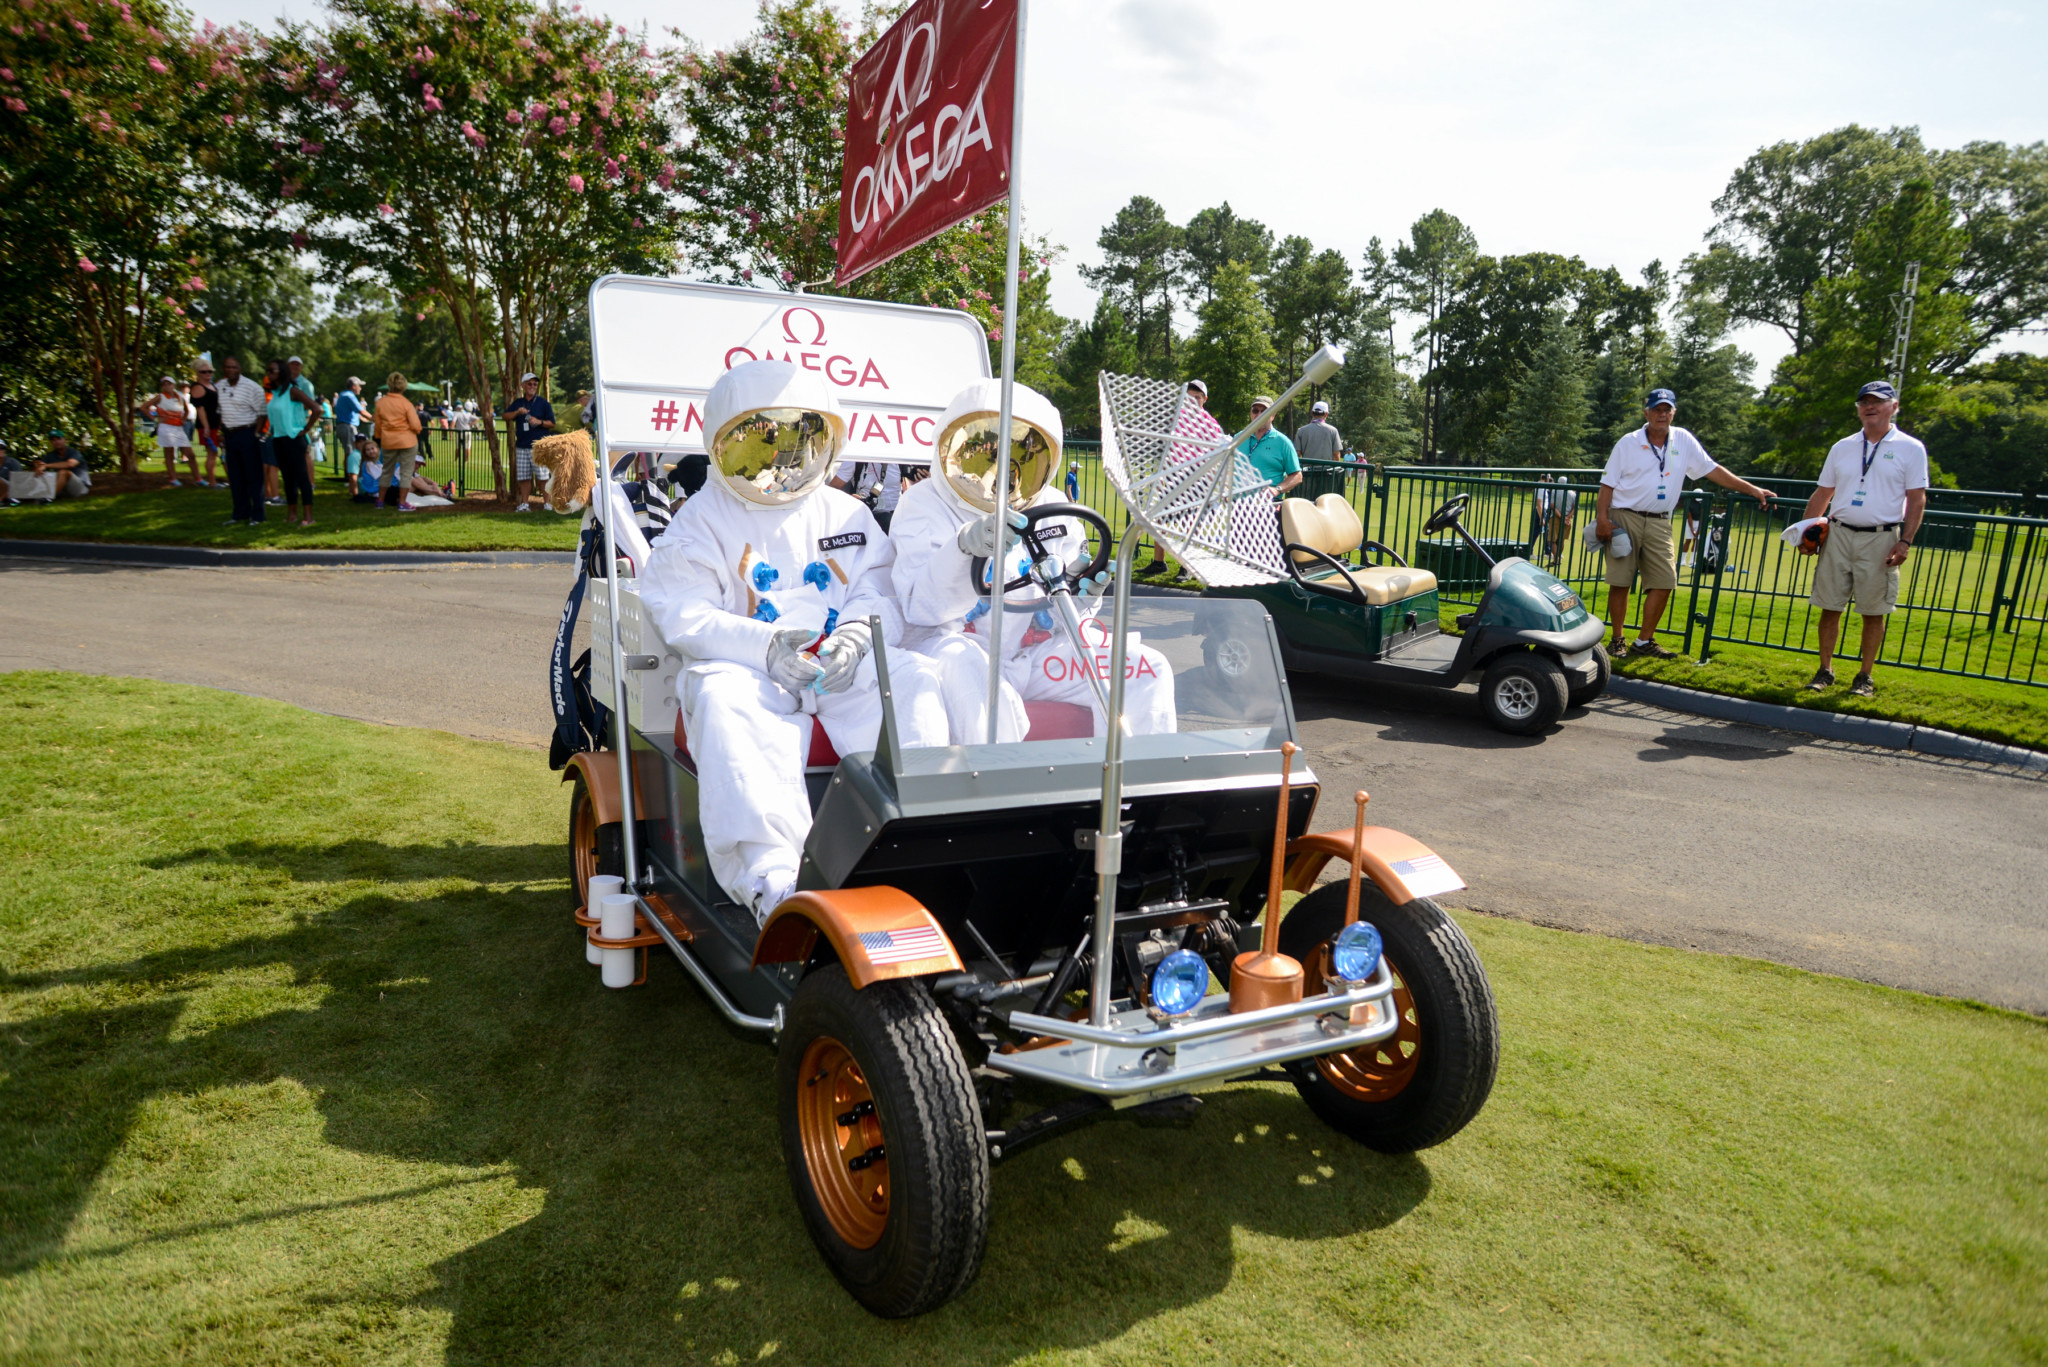 Sergio Garcia & Rory McIlroy Driving OMEGA Lunar Rover